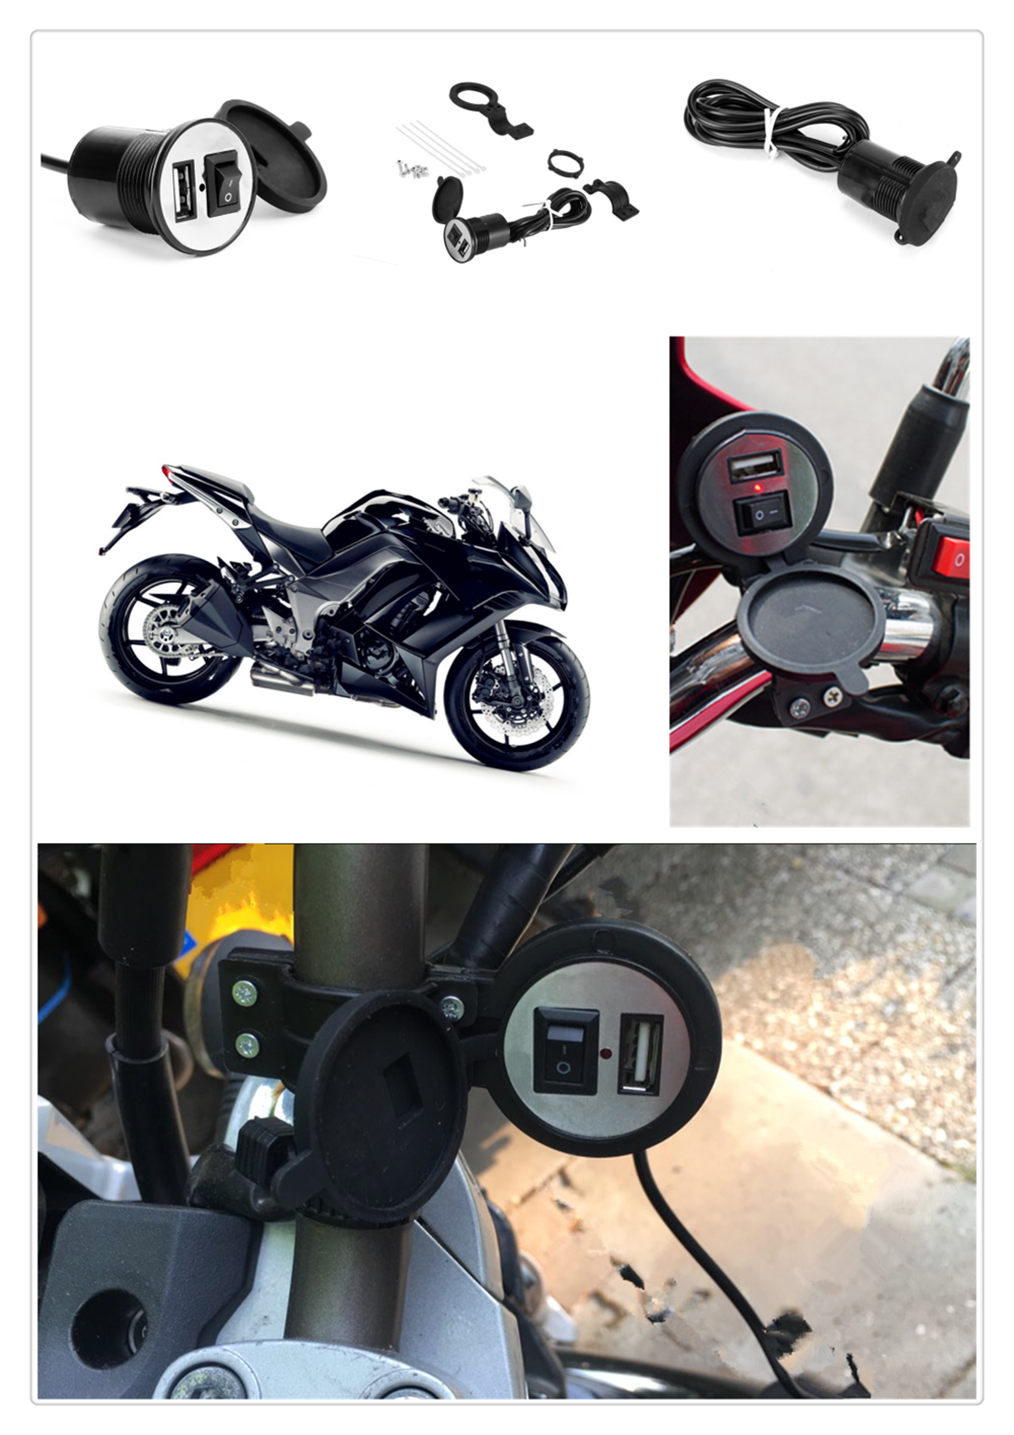 12-24V Motorcycle USB Charger Power Adapter Waterproof For SUZUKI DL650 V-STROM DR 650 S  SE SV650 S GSXR1000